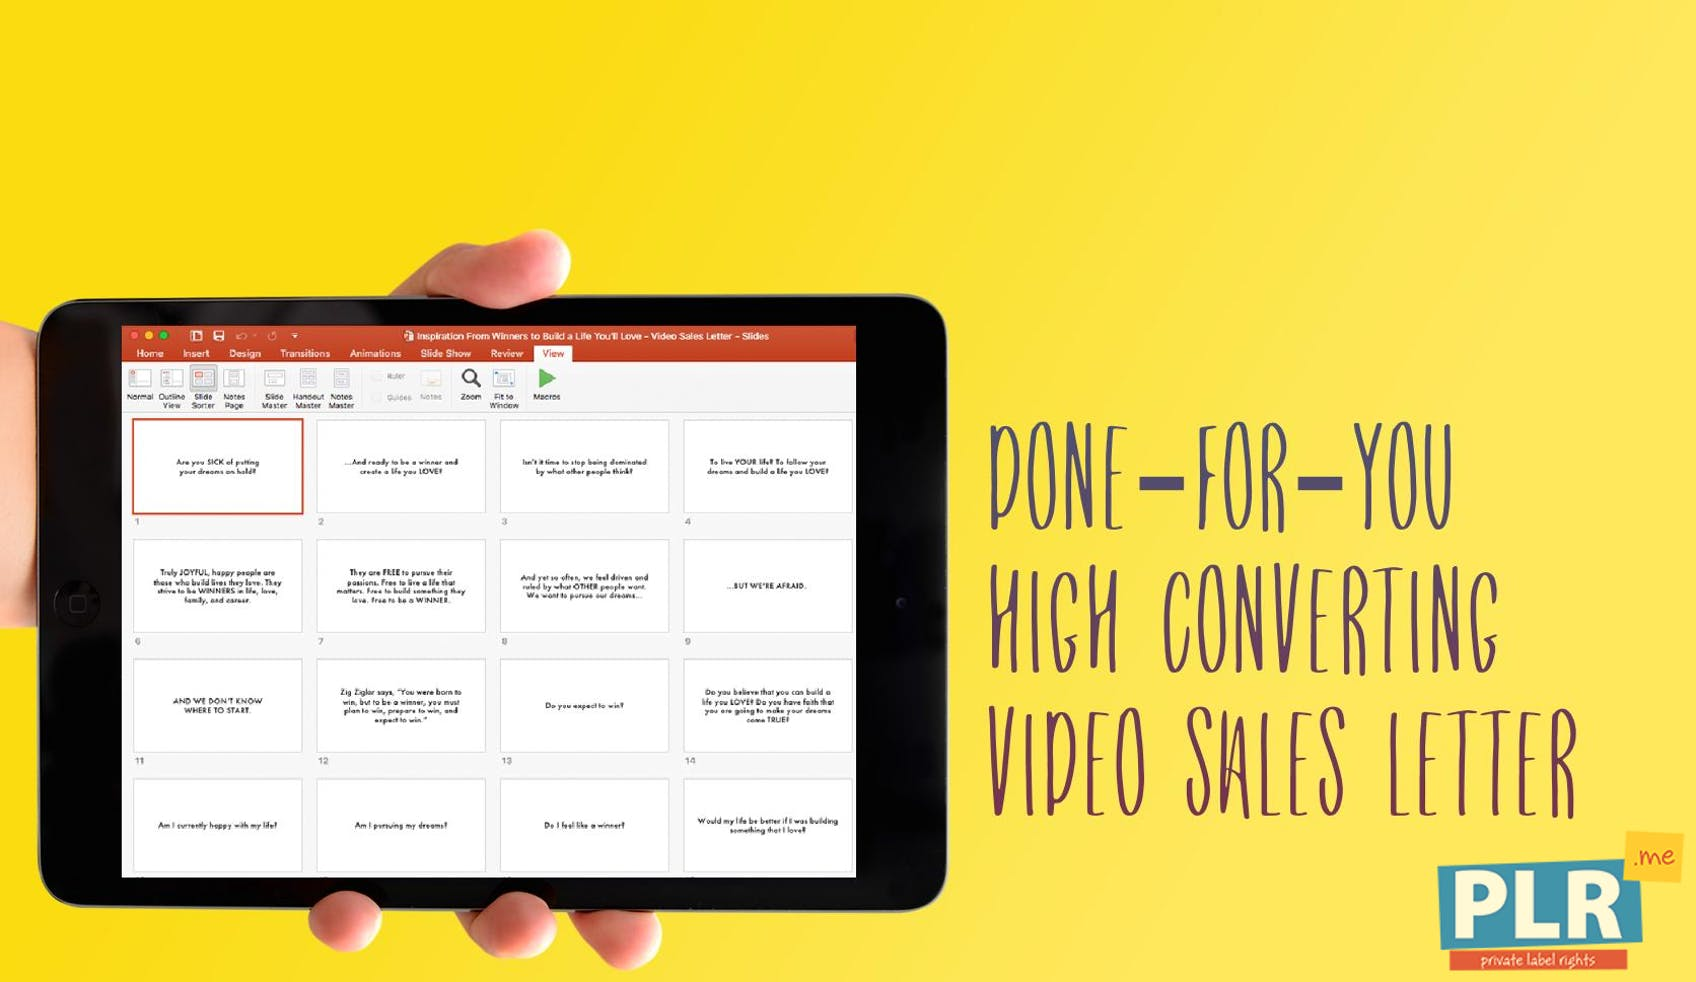 Plr Video Sales Letter Slides Inspiration From Winners To Build A